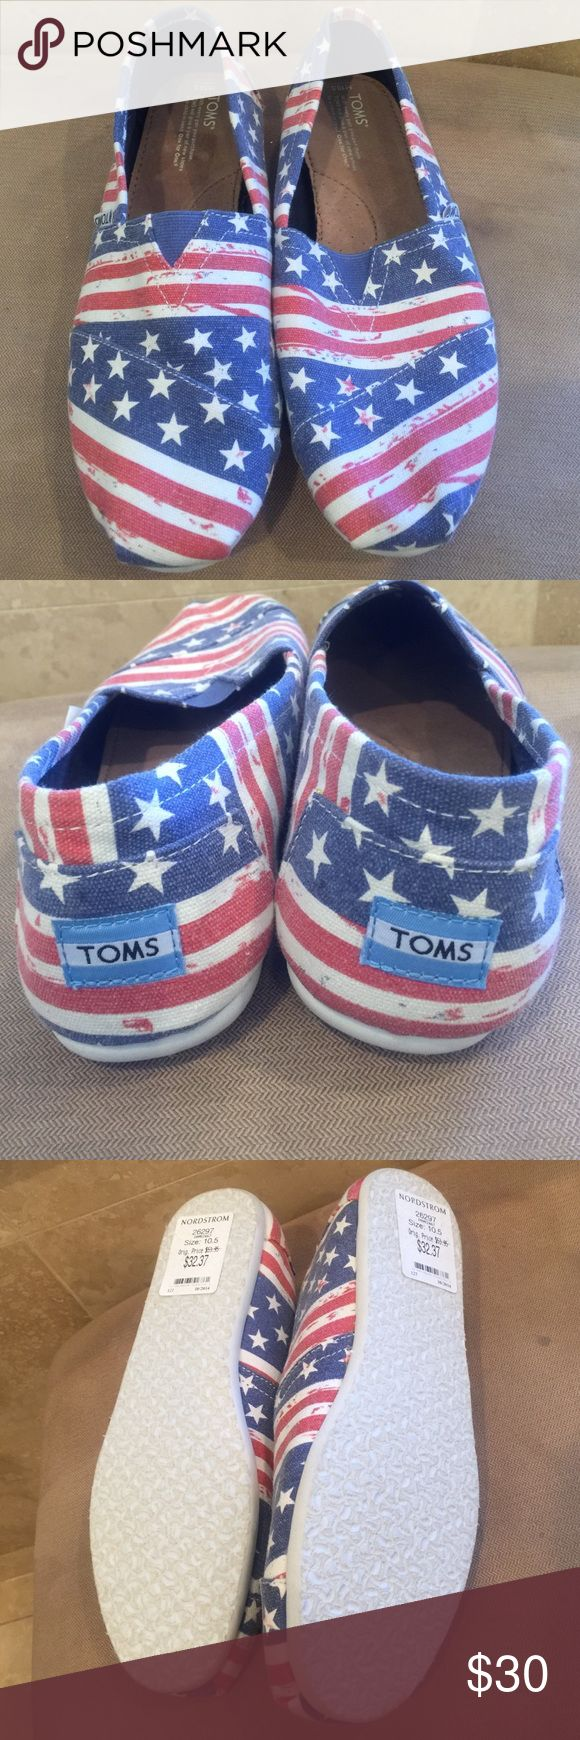 Toms Flag Shoes Size 10.5 Toms Flag Shoes Size 10.5, Brand New No Box TOMS Shoes Flats & Loafers